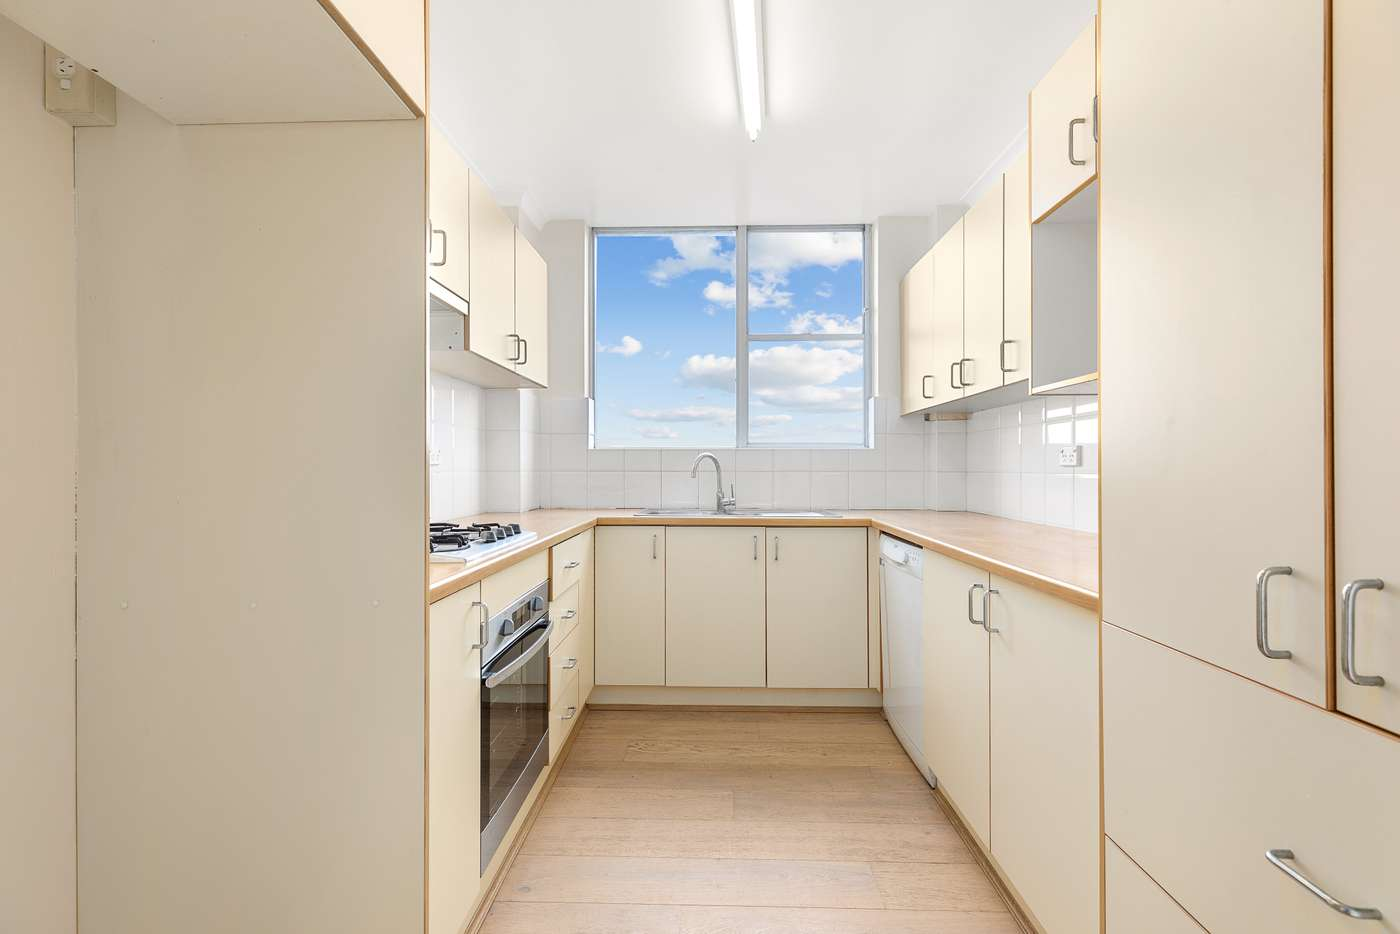 Seventh view of Homely apartment listing, 14/18 Cranbrook Avenue, Cremorne NSW 2090